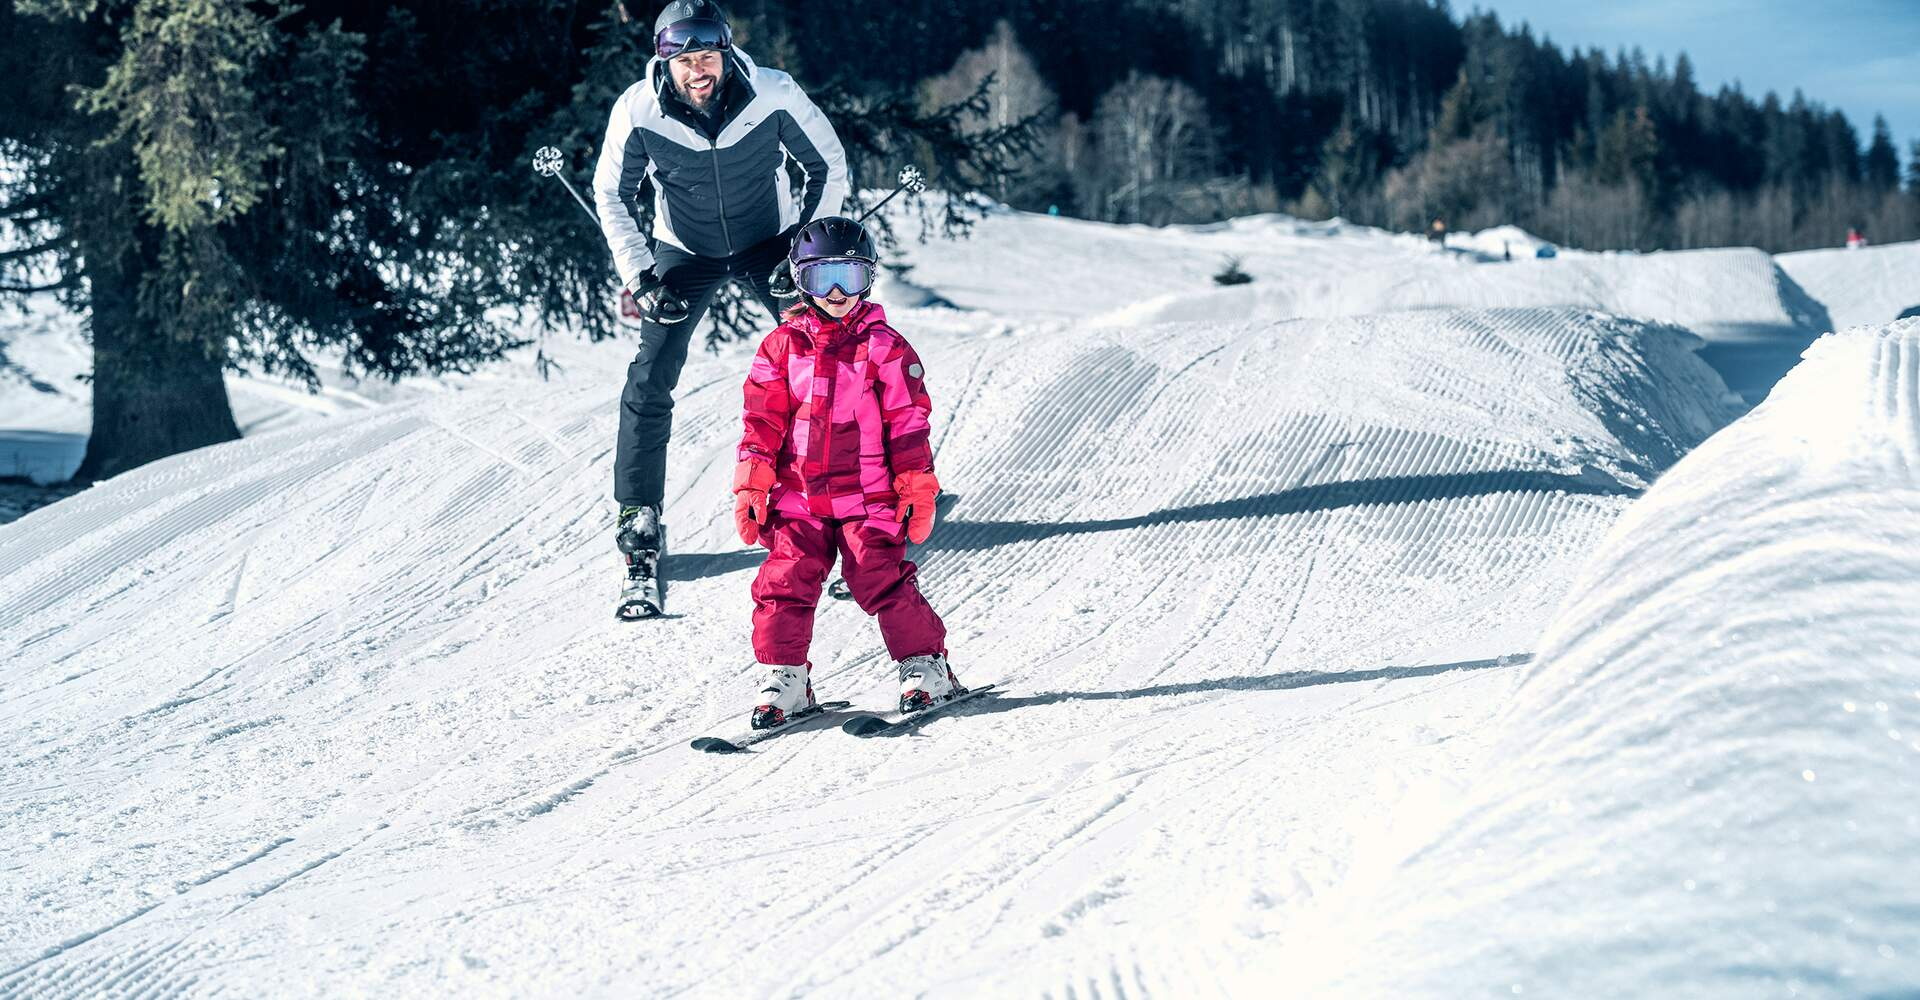 Phantasy Park - Fun piste for small  freestylers | © Kitzsteinhorn